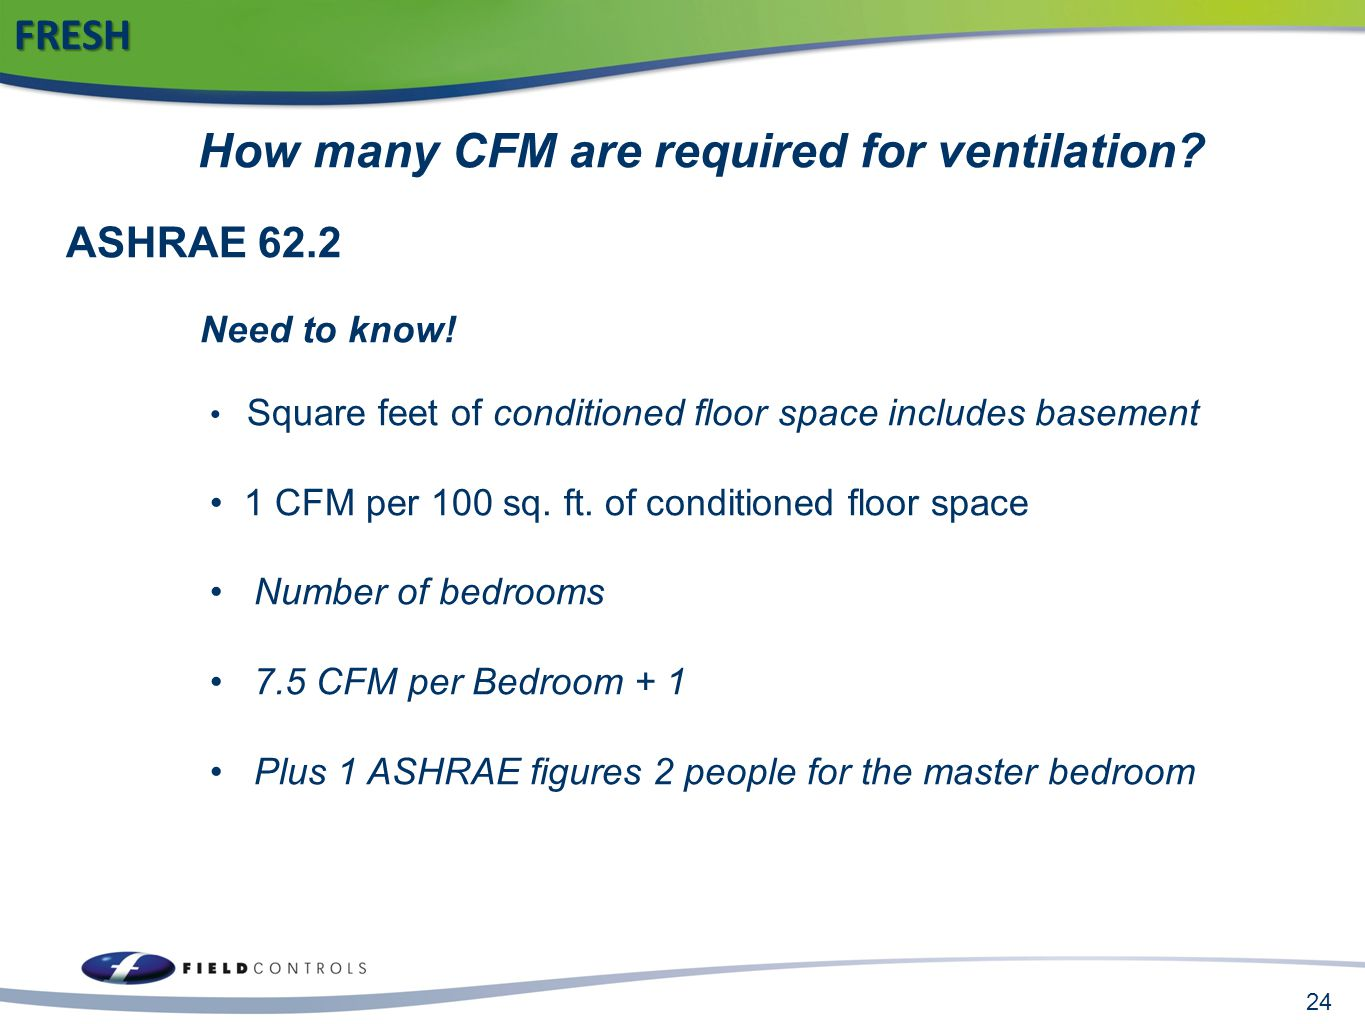 24FRESH How many CFM are required for ventilation? ASHRAE 62.2 Need to know! Square feet of conditioned floor space includes basement 1 CFM per 100 sq